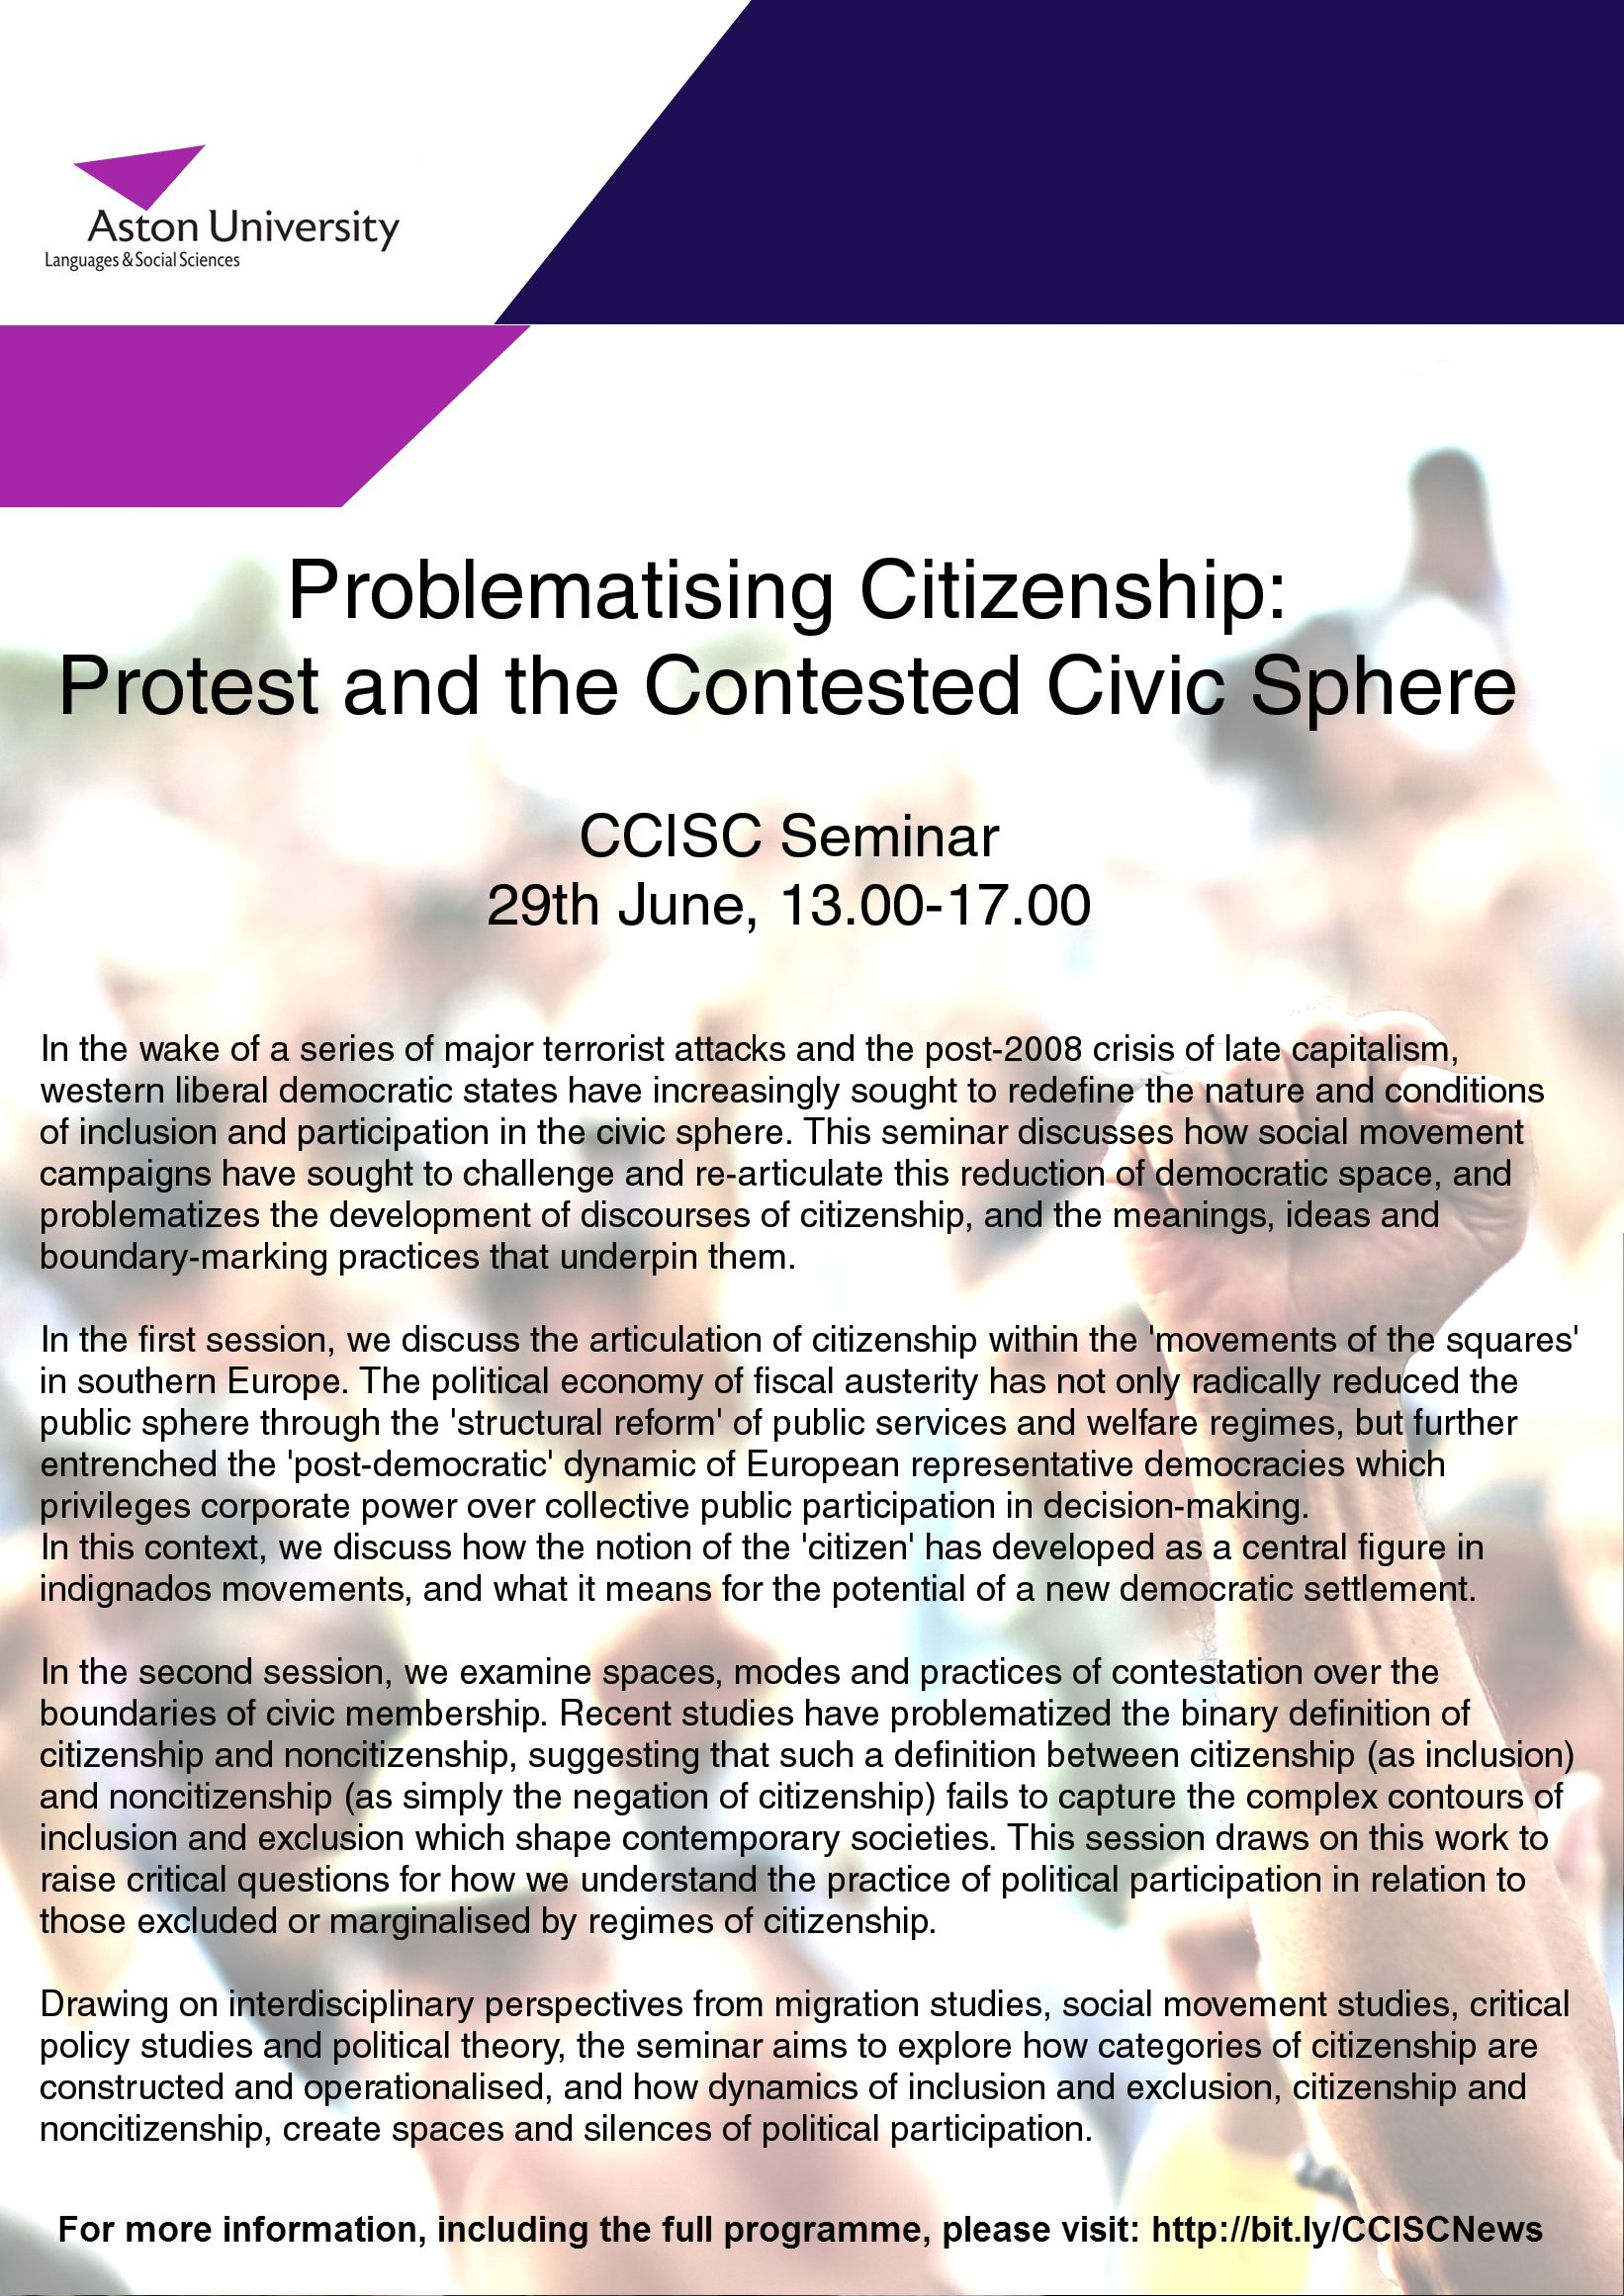 CCISC Poster 2